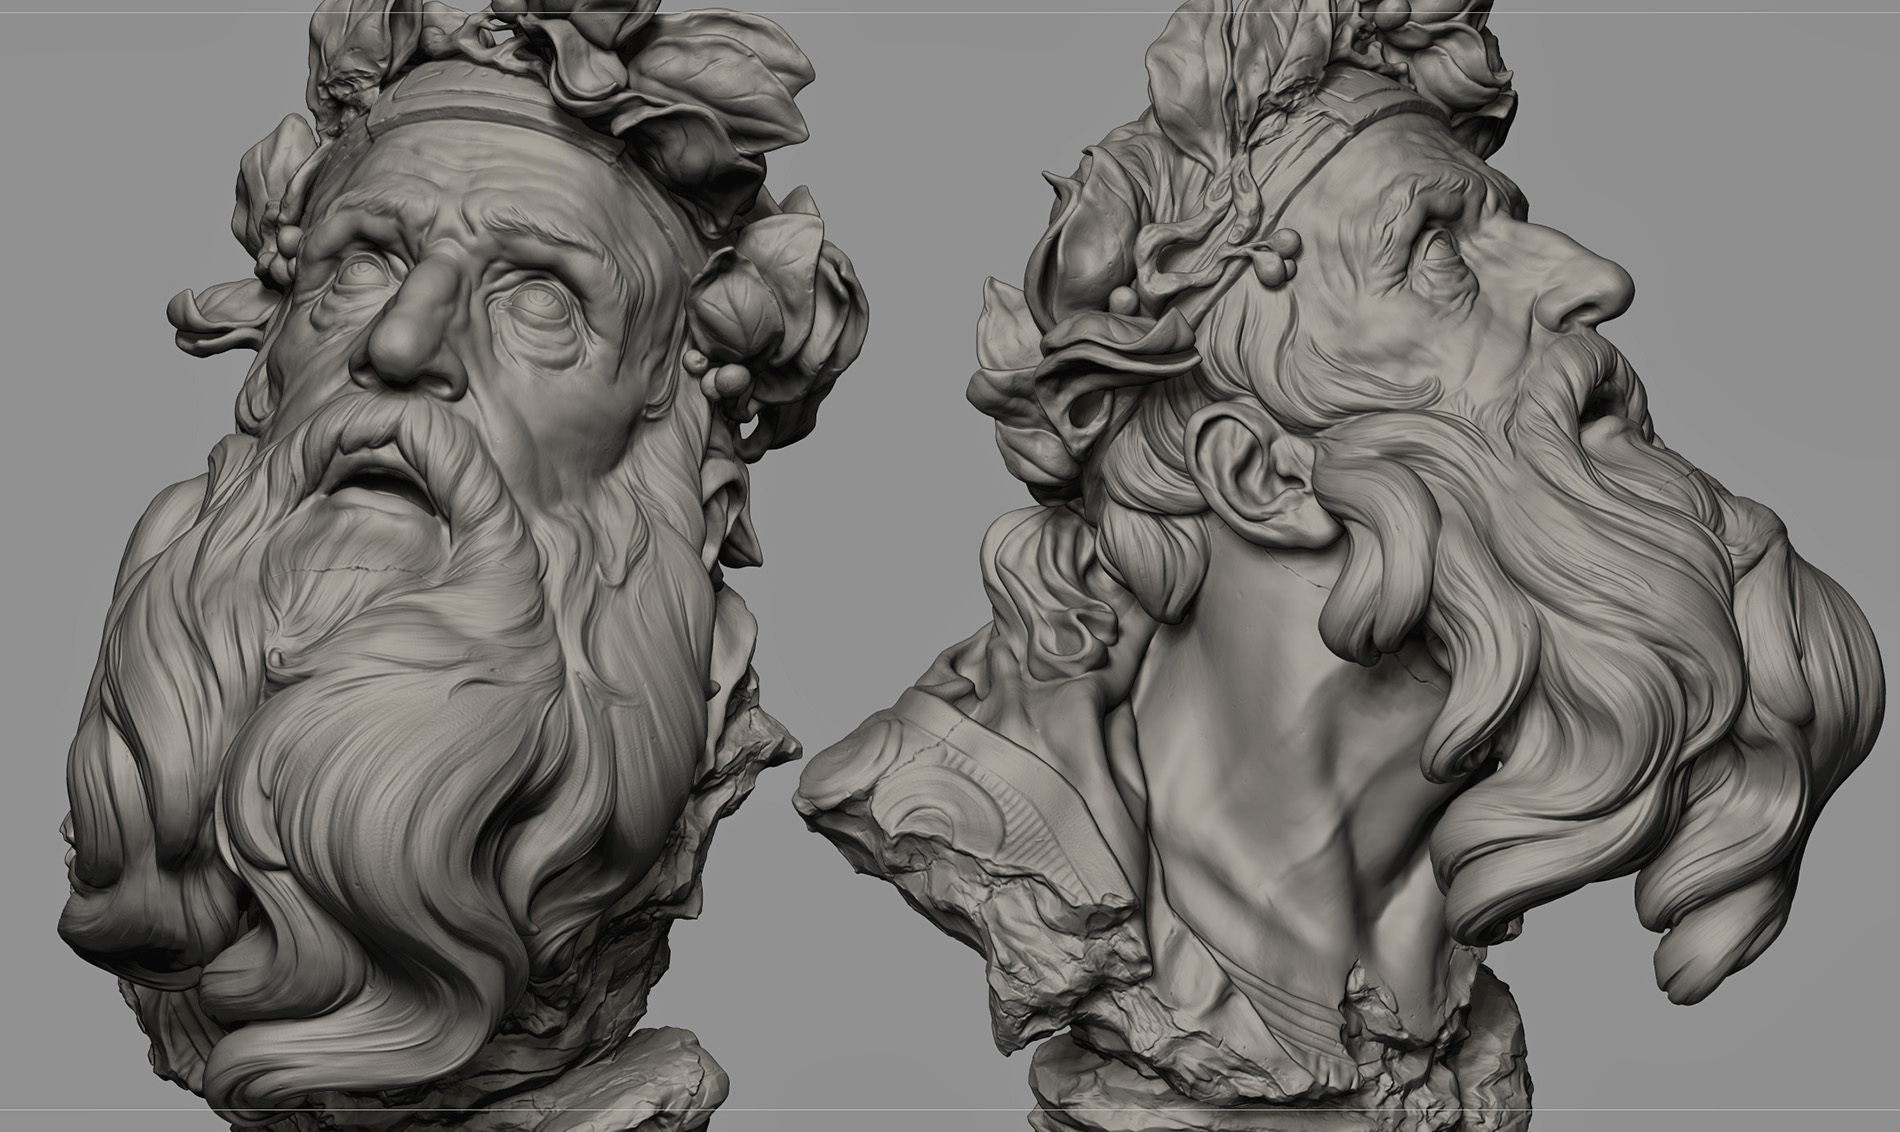 zbrush closeview2.jpg